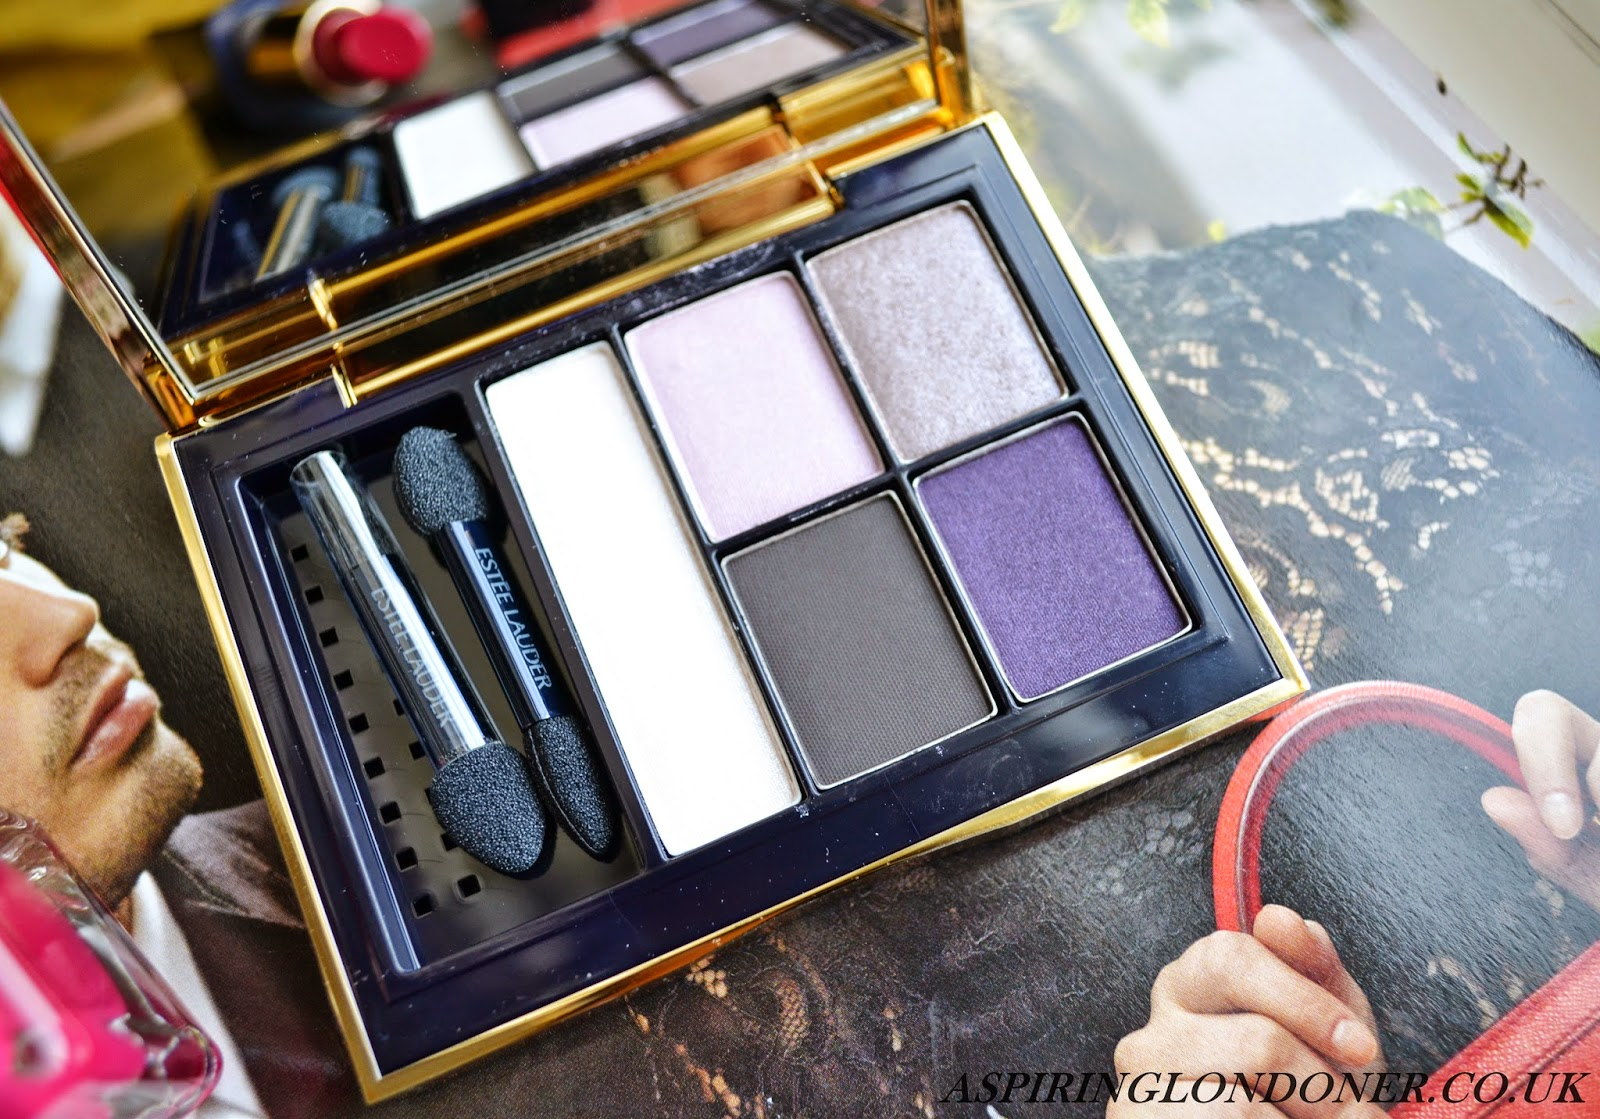 Estee Lauder Sculpting EyeShadow 5-Colour Palette in Envious Orchid - Aspiring Londoner